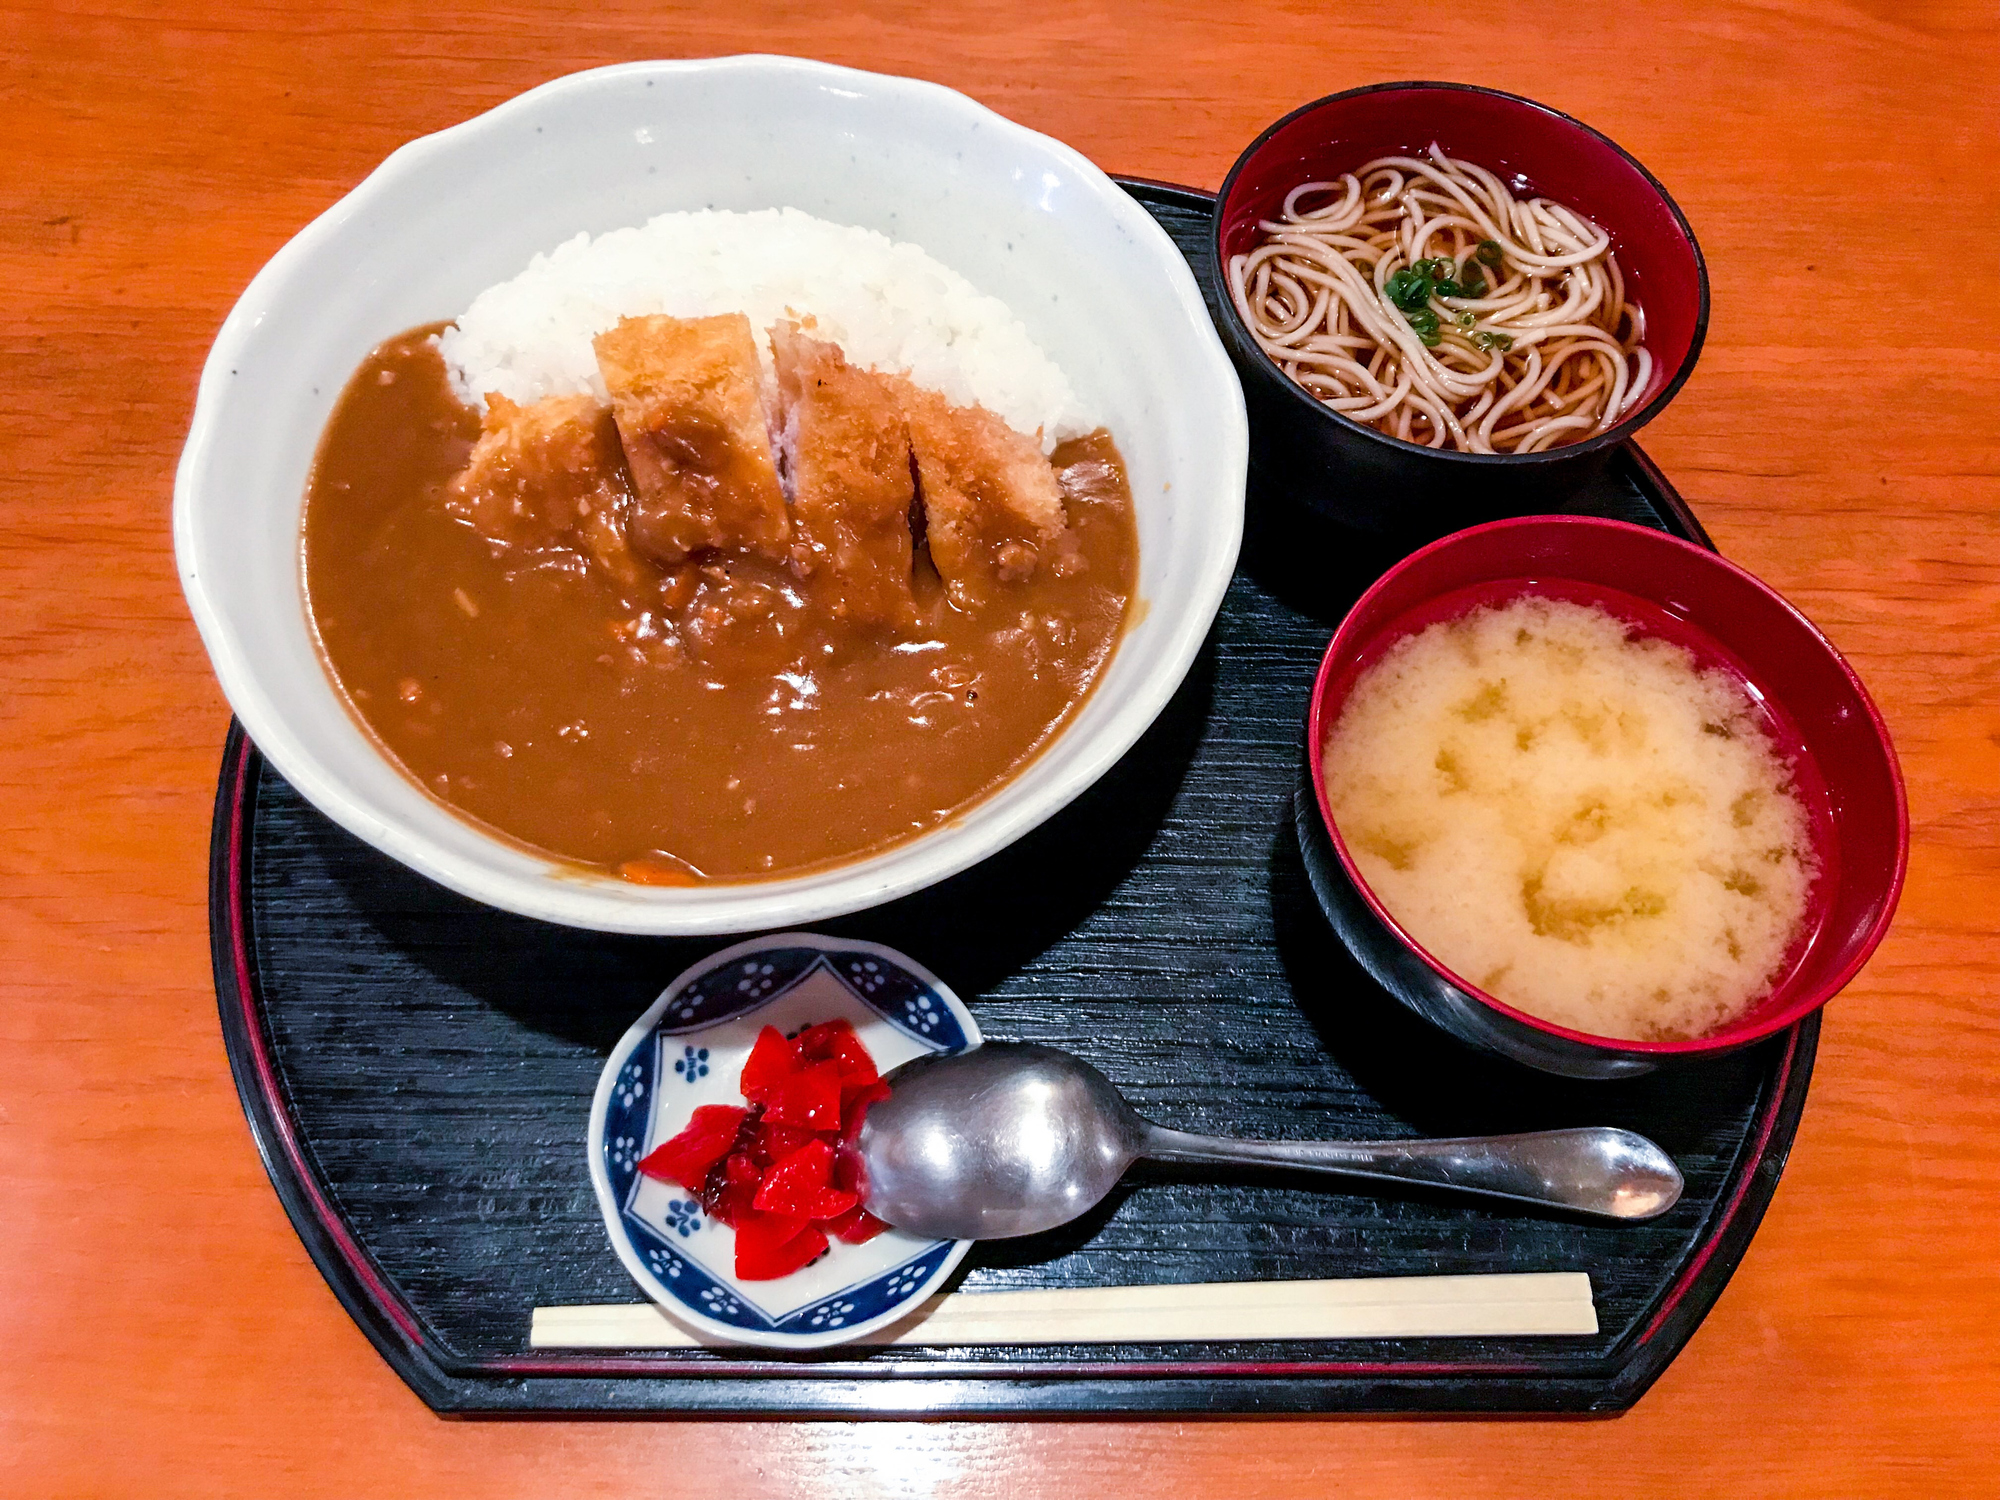 Eating Like A Local A B-Kyu Gurume - Tonkatsu curry and soba, buckwheat noodles